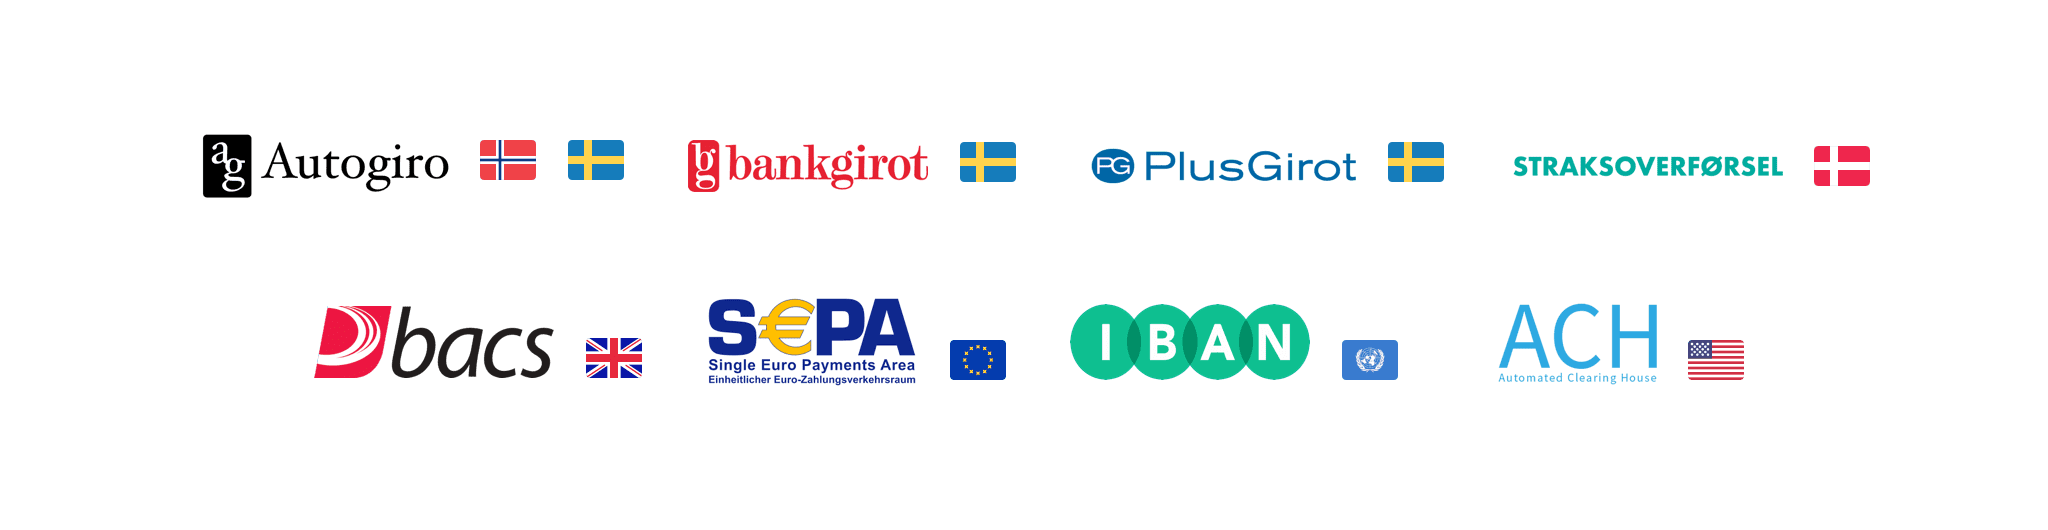 Multiple bank payments schemes in the same image such as Autogiro, Plusgiro, Bankgiro, IBAN, ACH, BACS